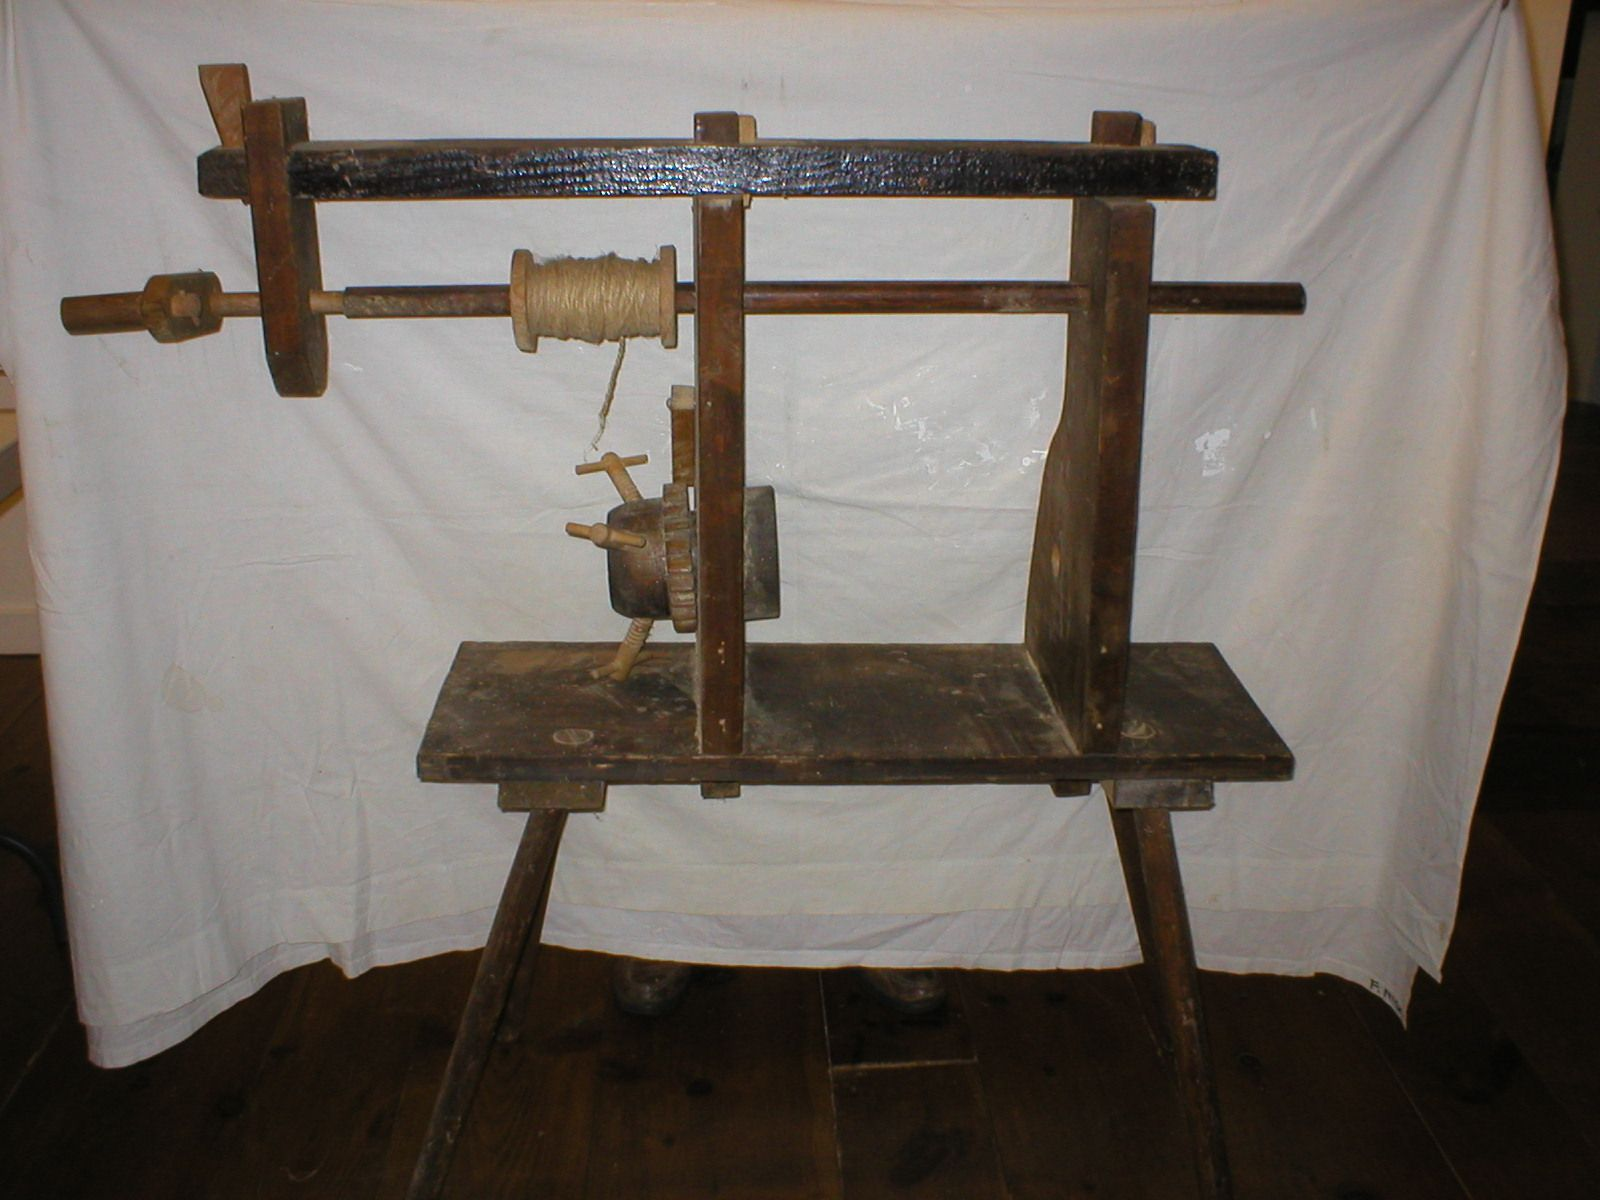 This is a mid-20 century broom making machine. It is operated by placing the shaft through two holes, with the brush part of the broom oriented to the left (in photo). The rushes were bound using the crank and spool of twine. At Chatham Historical Society, Chatham, MA. #atwoodhouse, #chathamhistoricalsociety, #chatham, #capecod, #broom, #maker, #machine, #tool